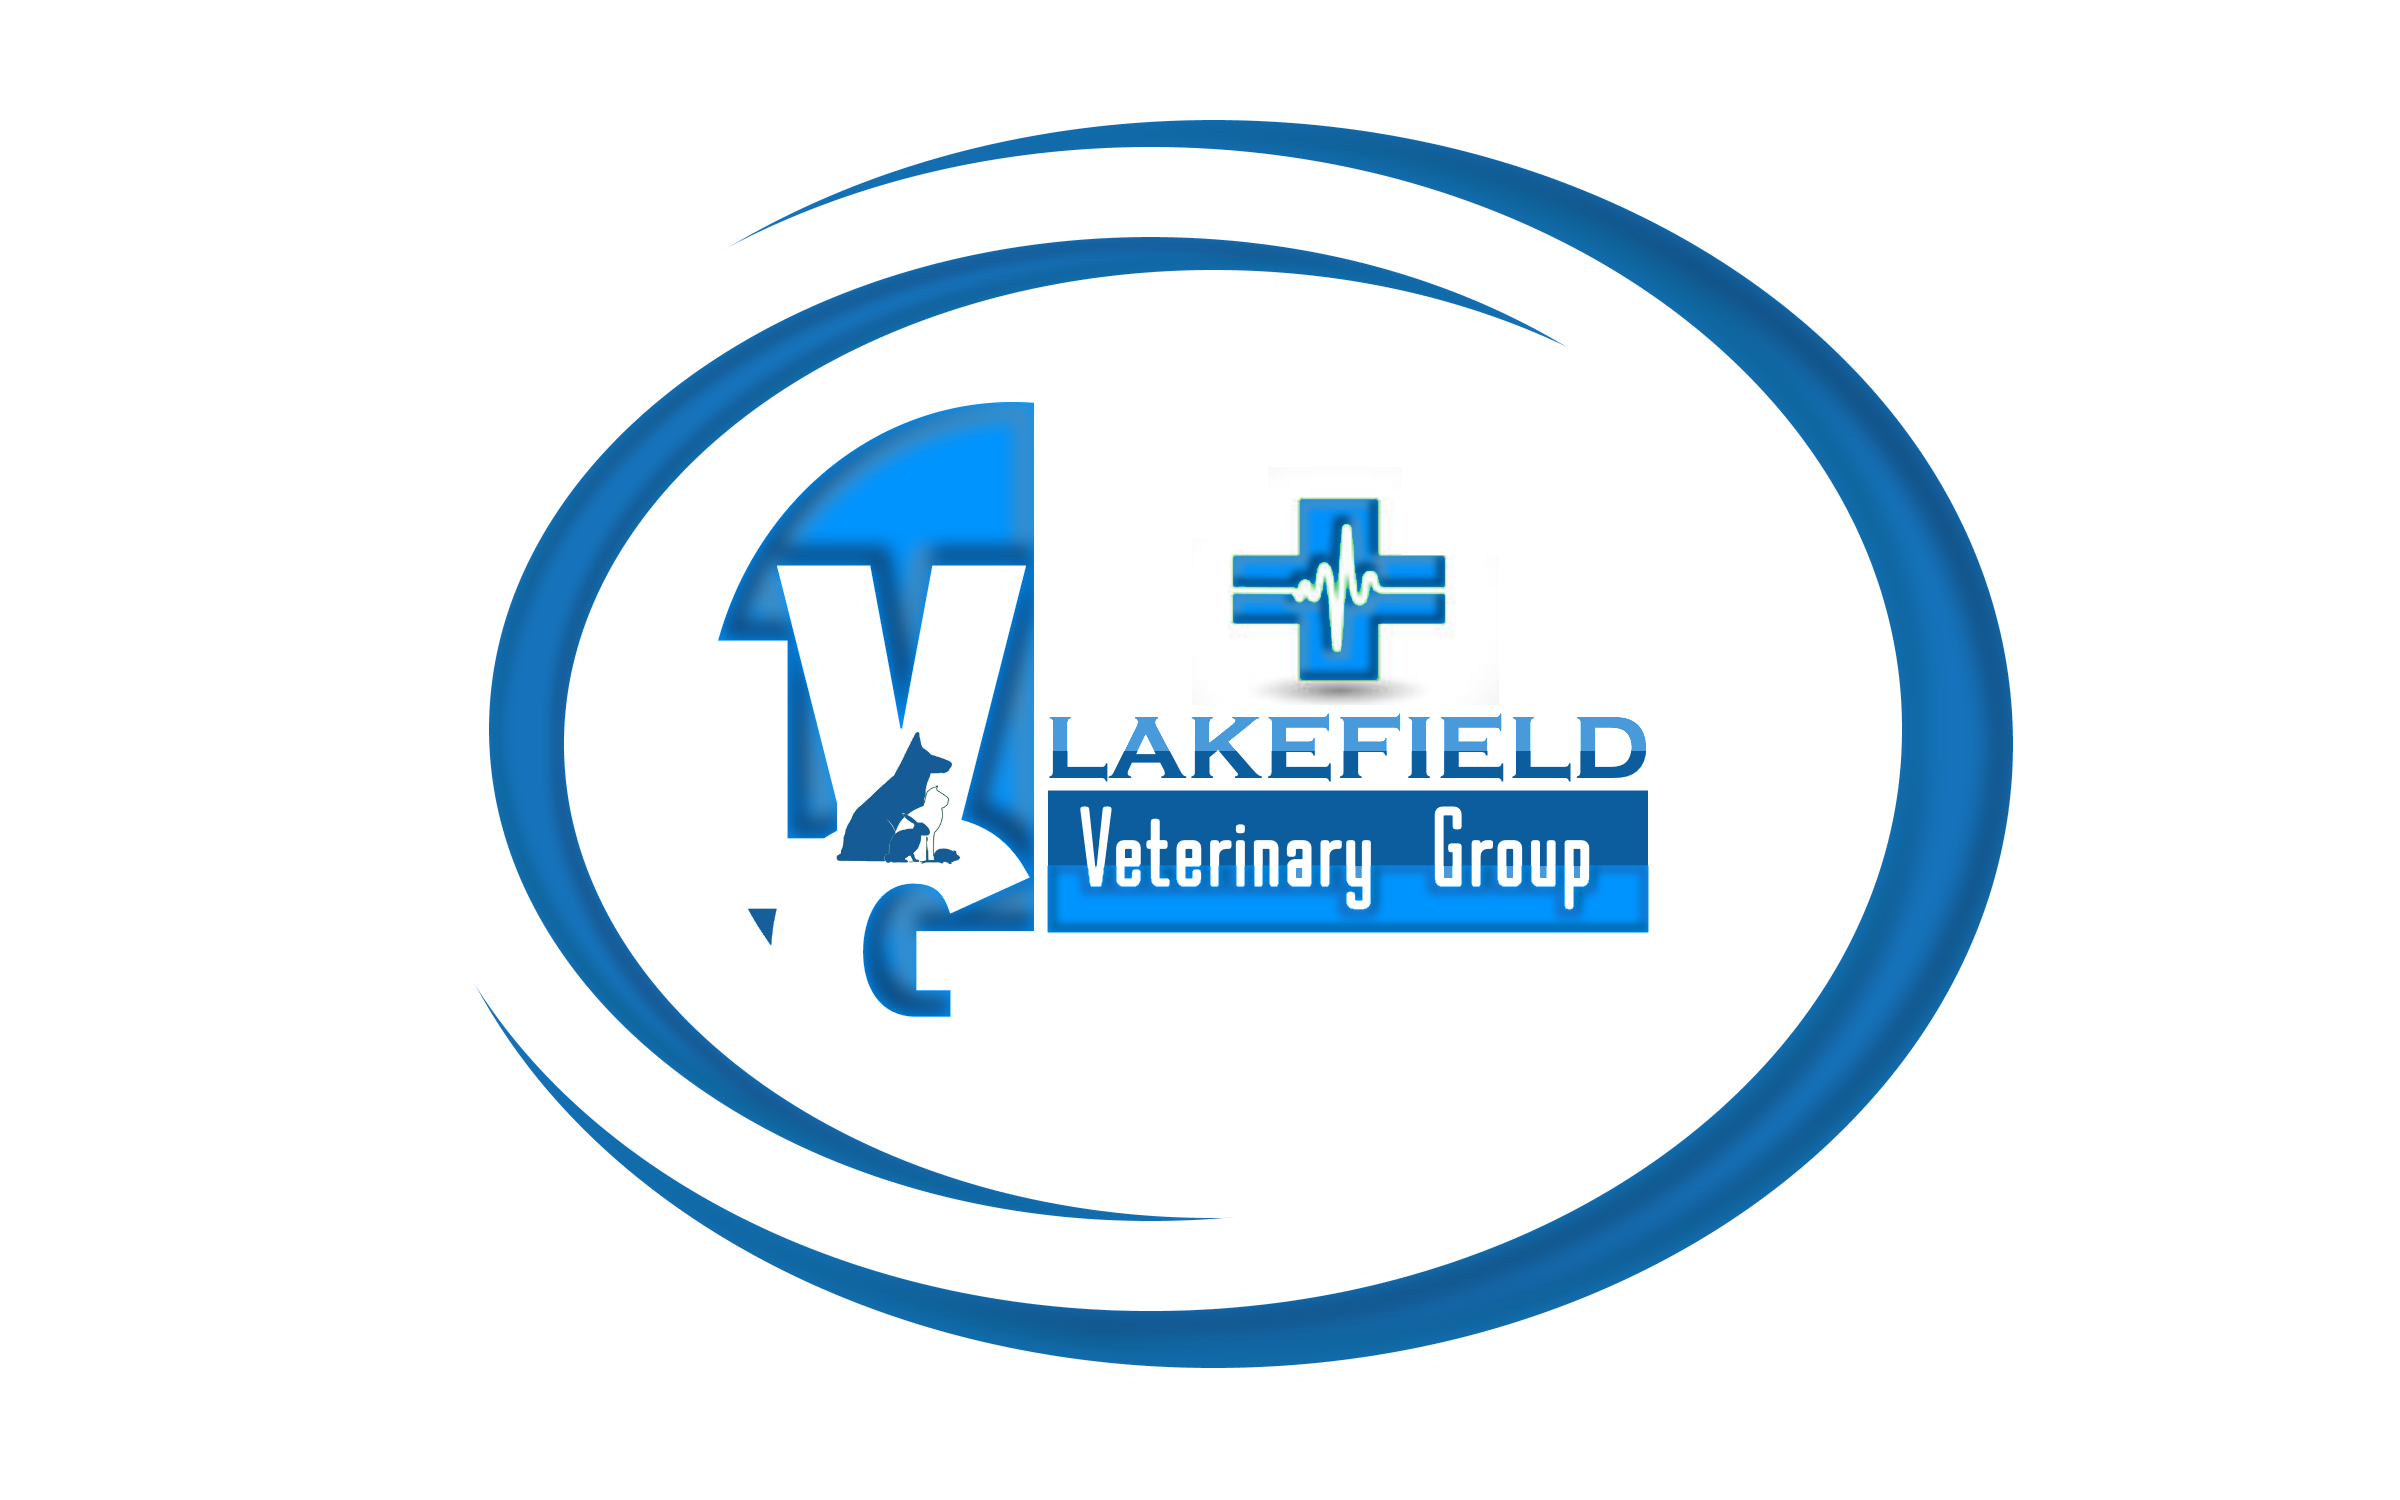 Logo Design by Roberto Bassi - Entry No. 64 in the Logo Design Contest Inspiring Logo Design for Lakefield Veterinary Group.